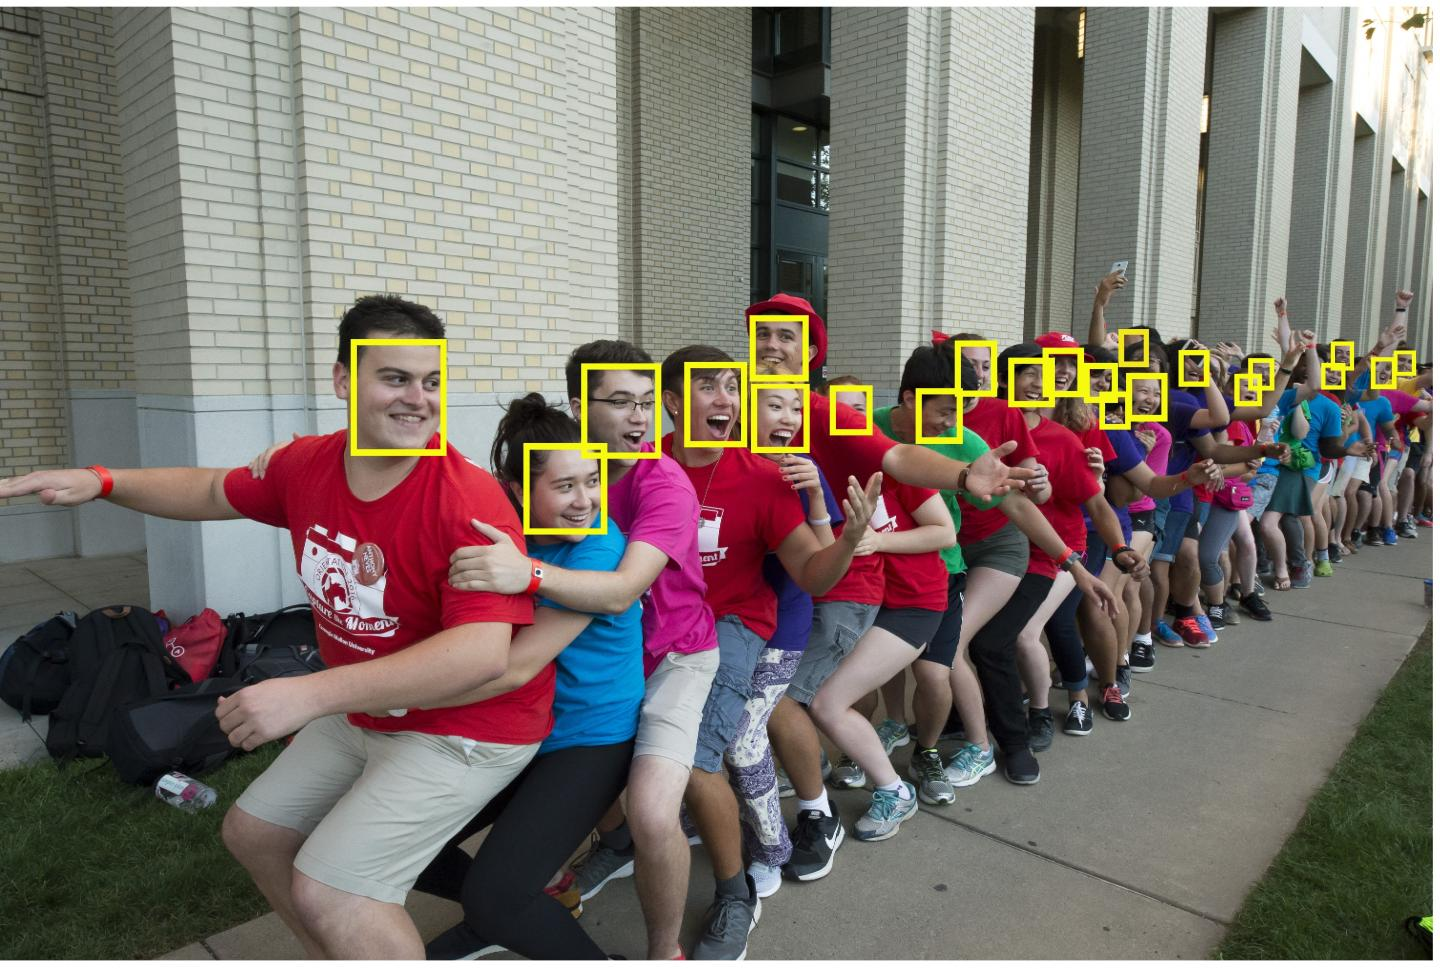 Finding faces in a crowd.jpg